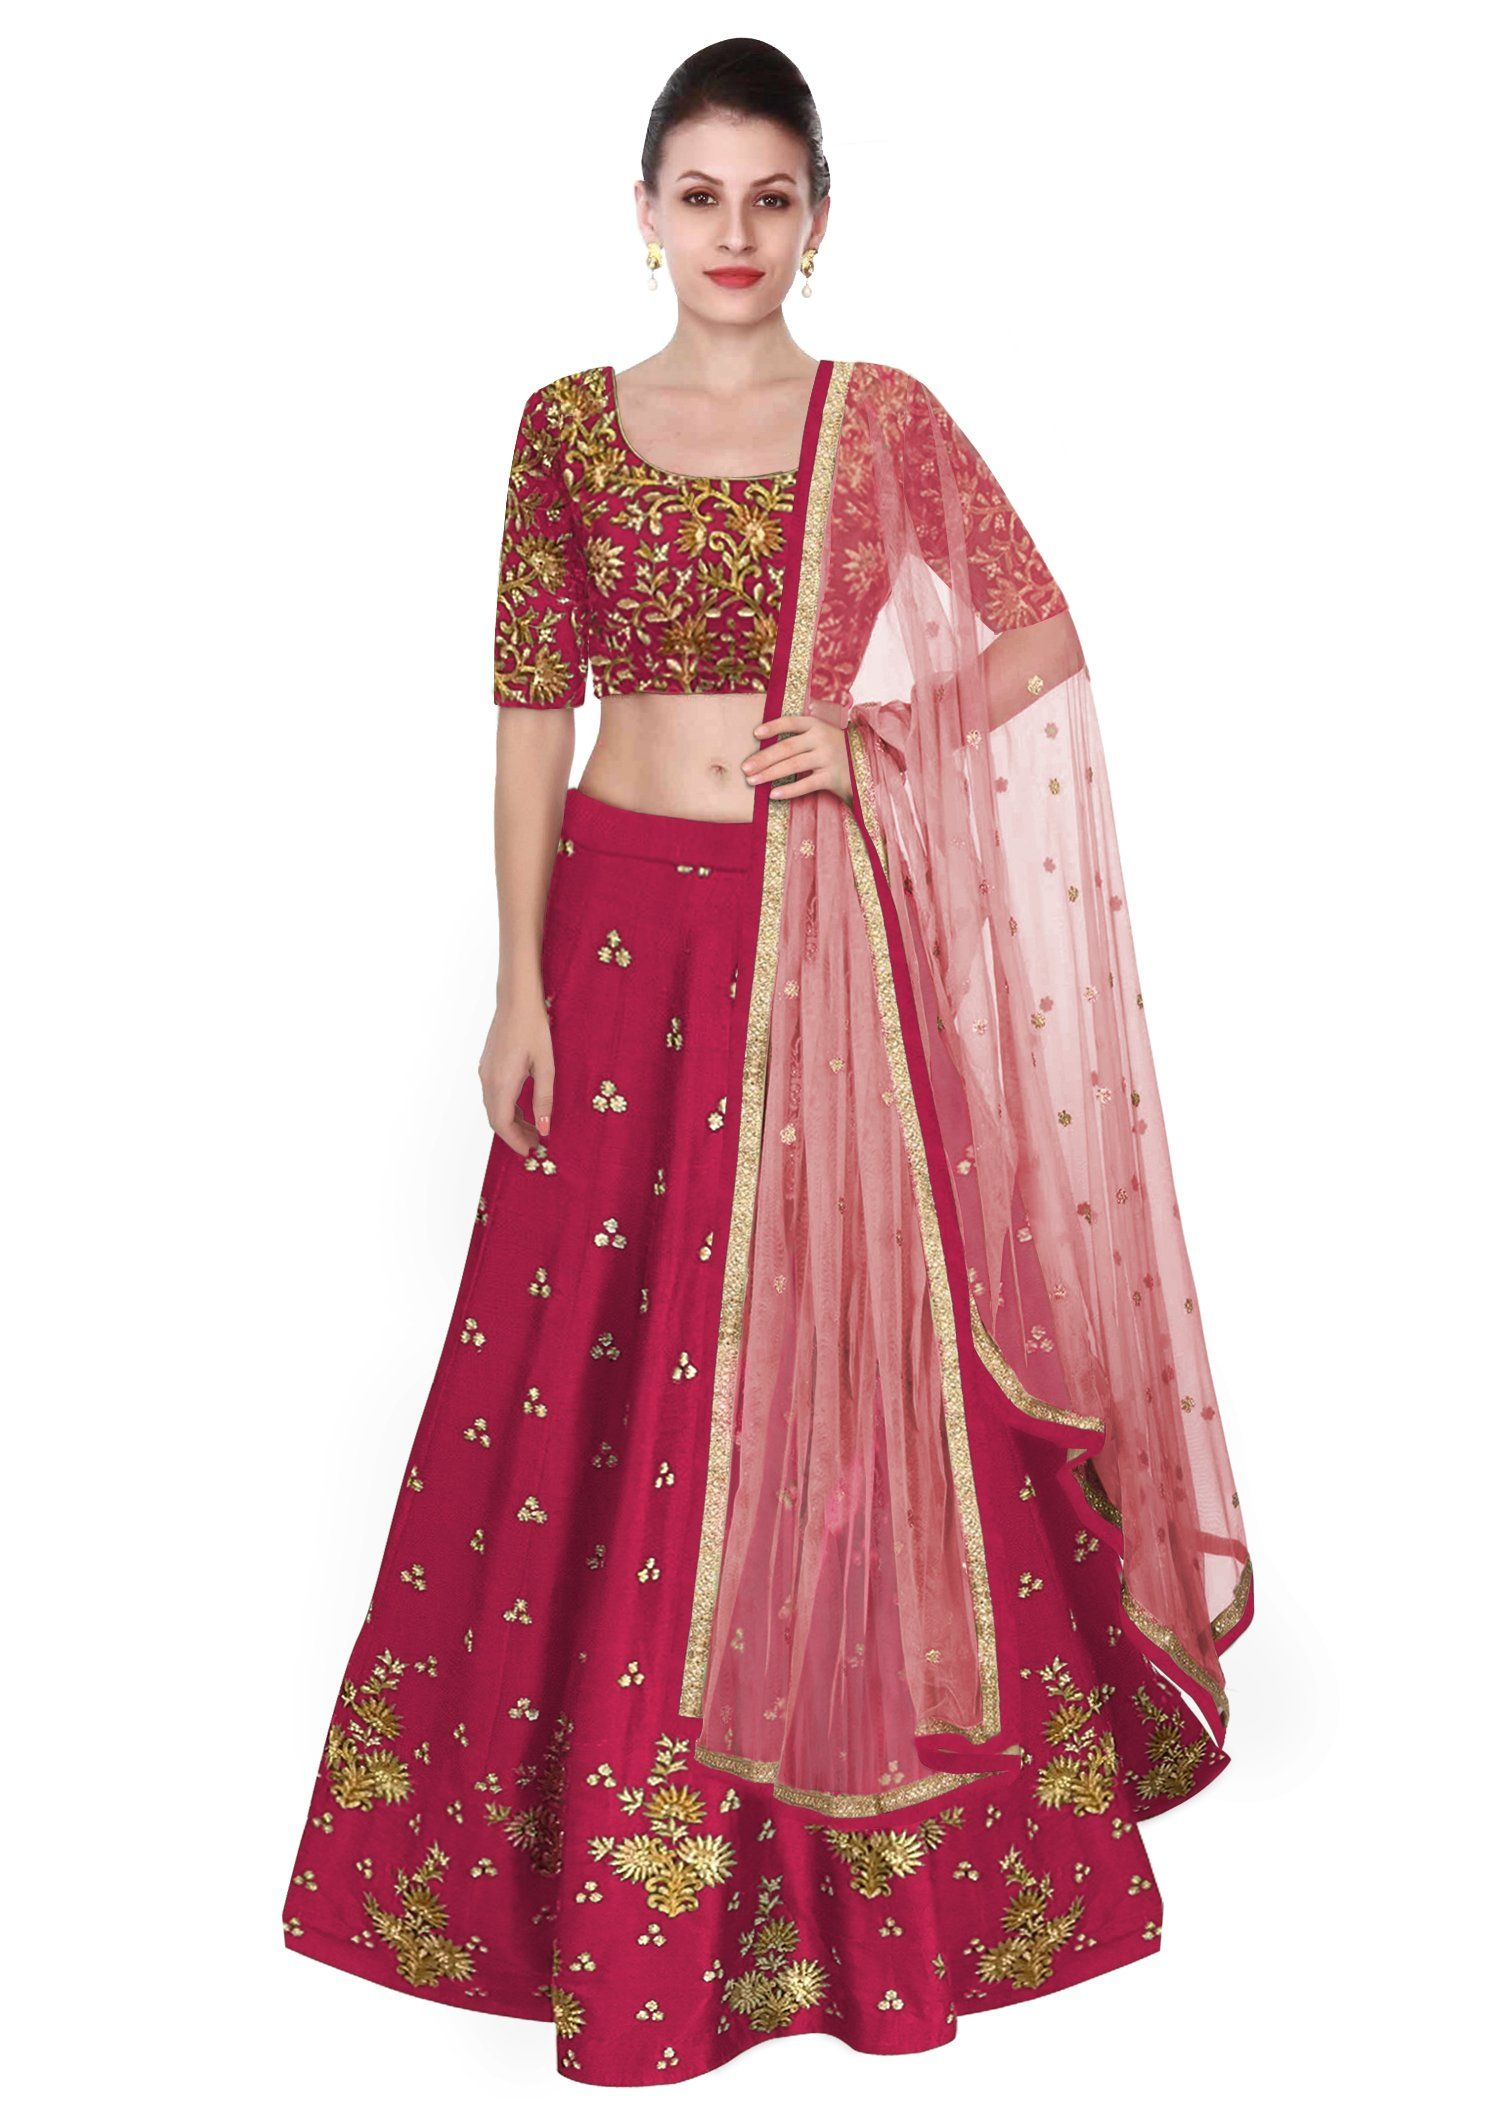 c3425dd372 Featuring the dark pink #Lehenga #Choli in raw silk with zari, gotta  embroidery & light pink dupatta.